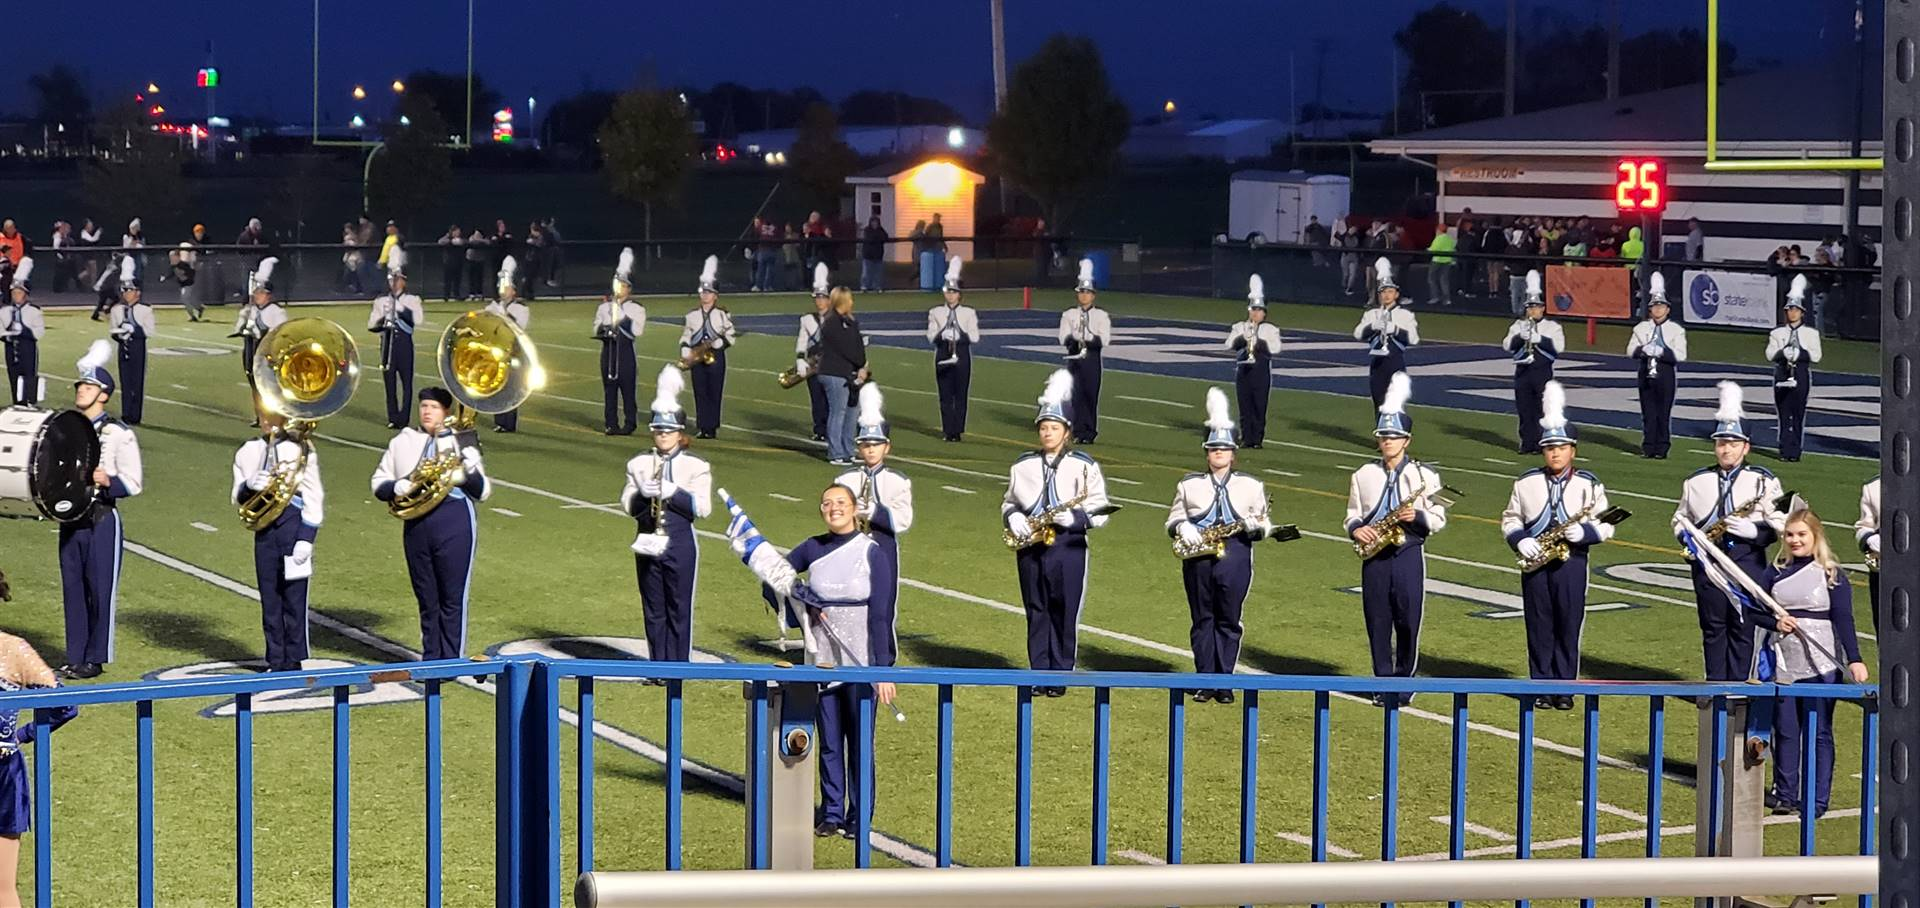 The Marching Band performing on the field on a Friday night.